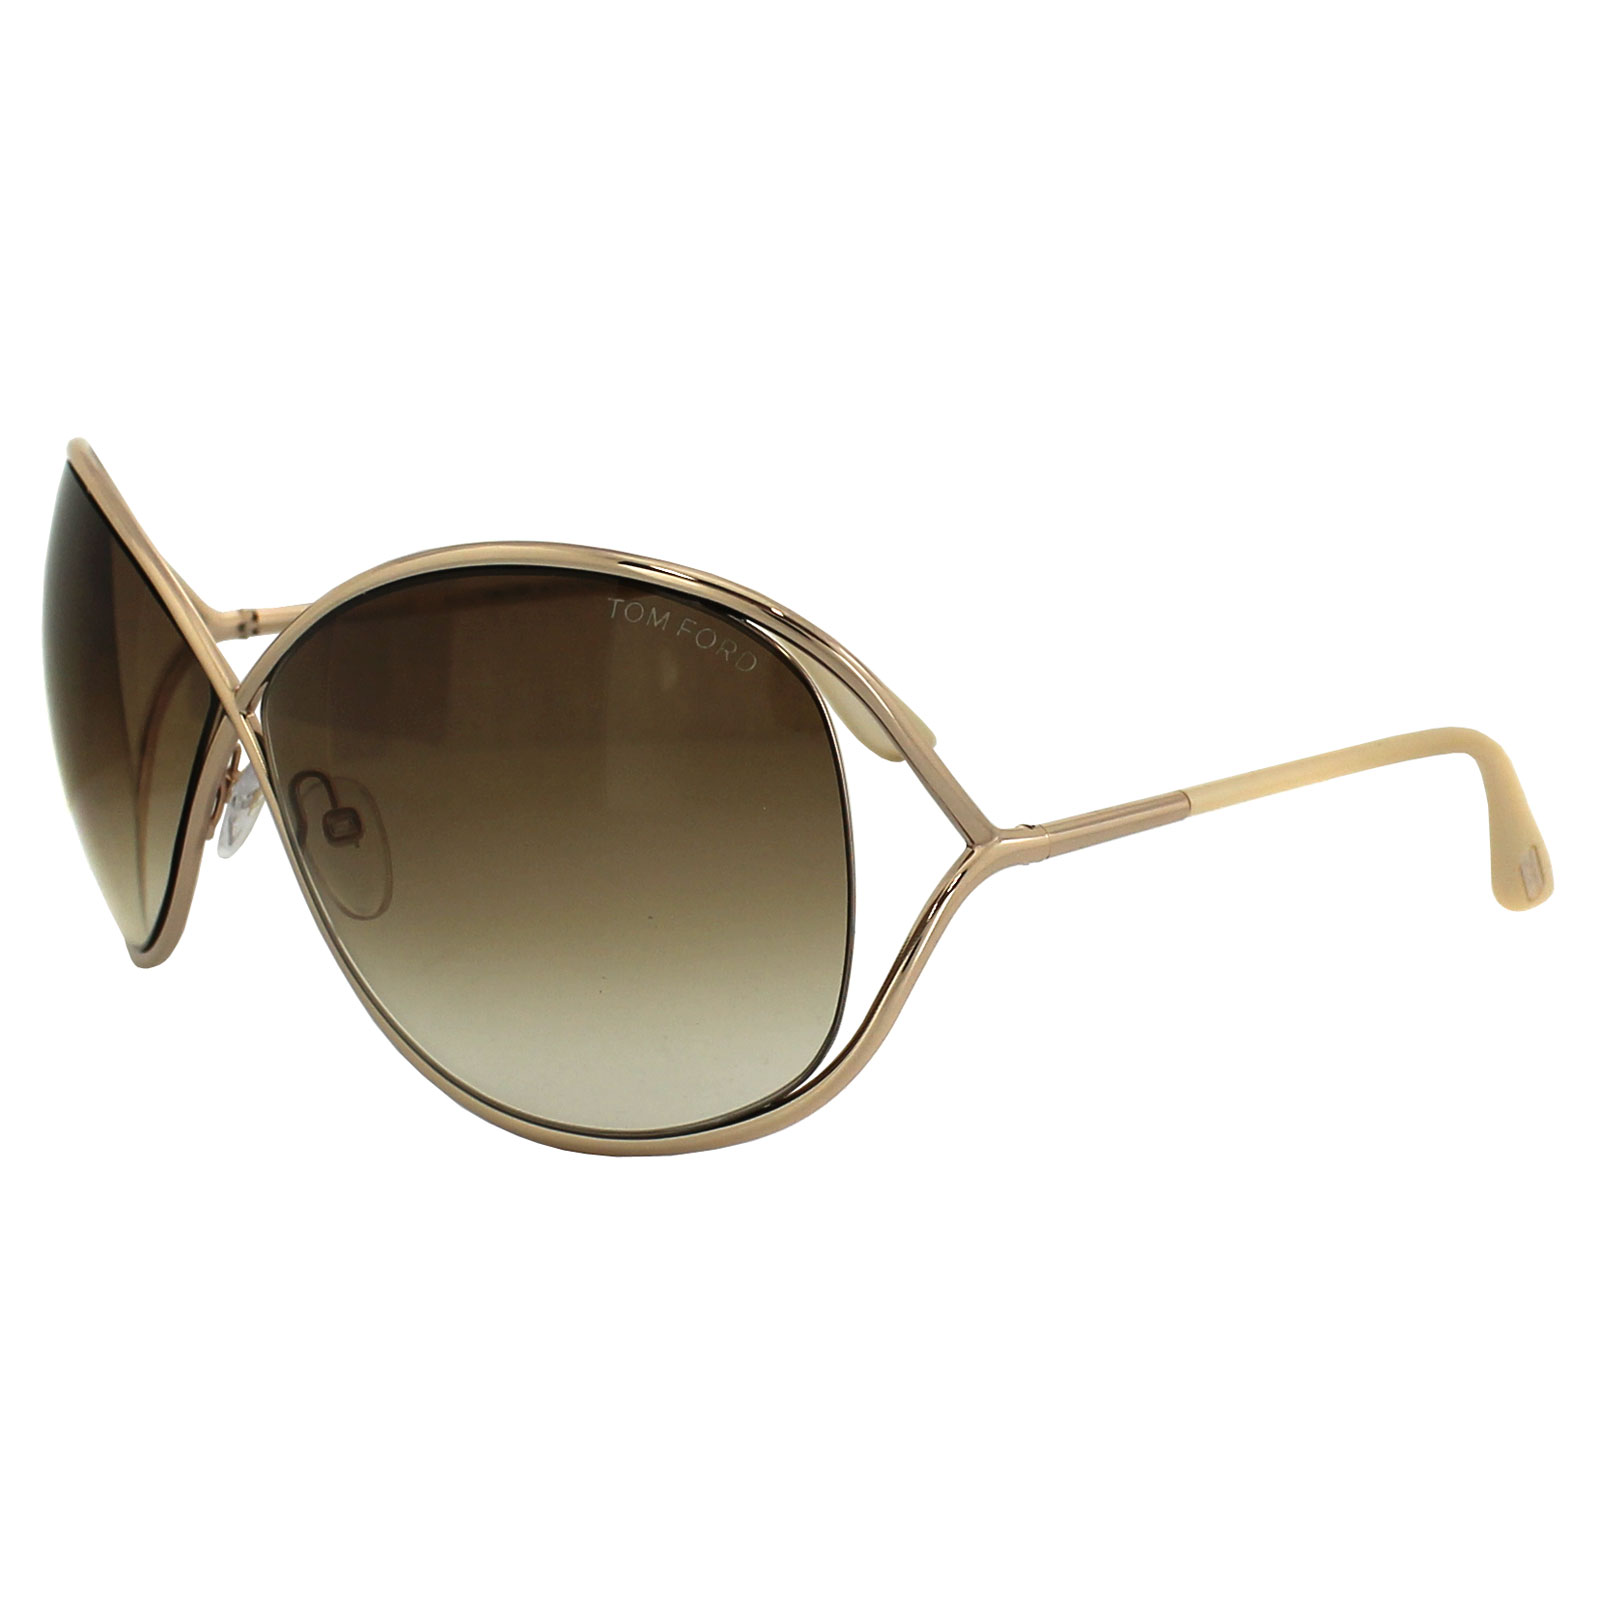 cheap tom ford 0130 miranda sunglasses discounted sunglasses. Cars Review. Best American Auto & Cars Review